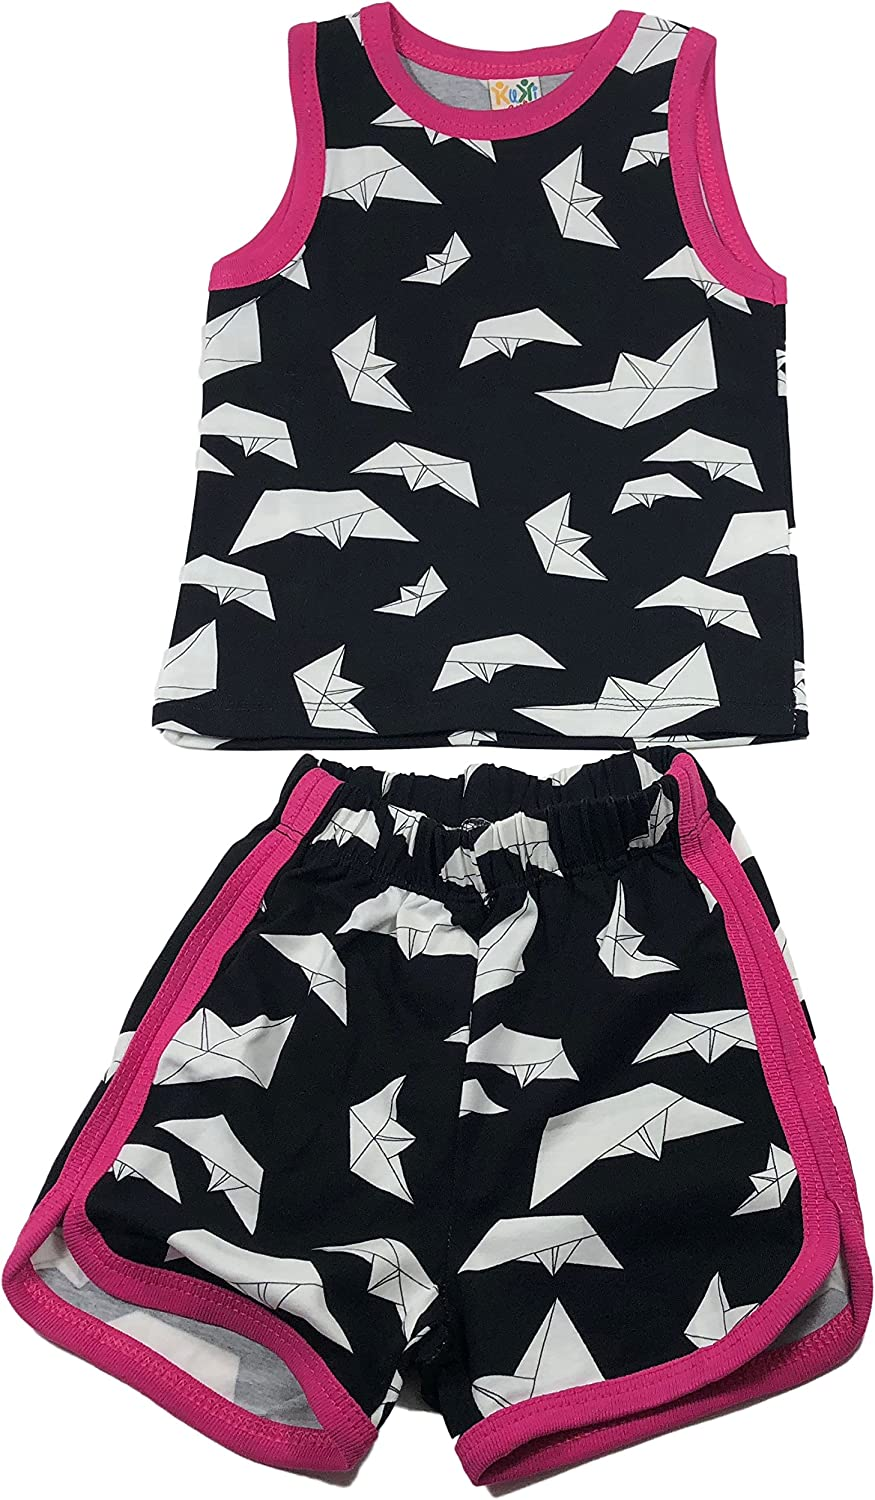 Baby Boys Baby Girls T-Shirt Clothes Vest and Pants Outfit Sets Easter Shark Outfits